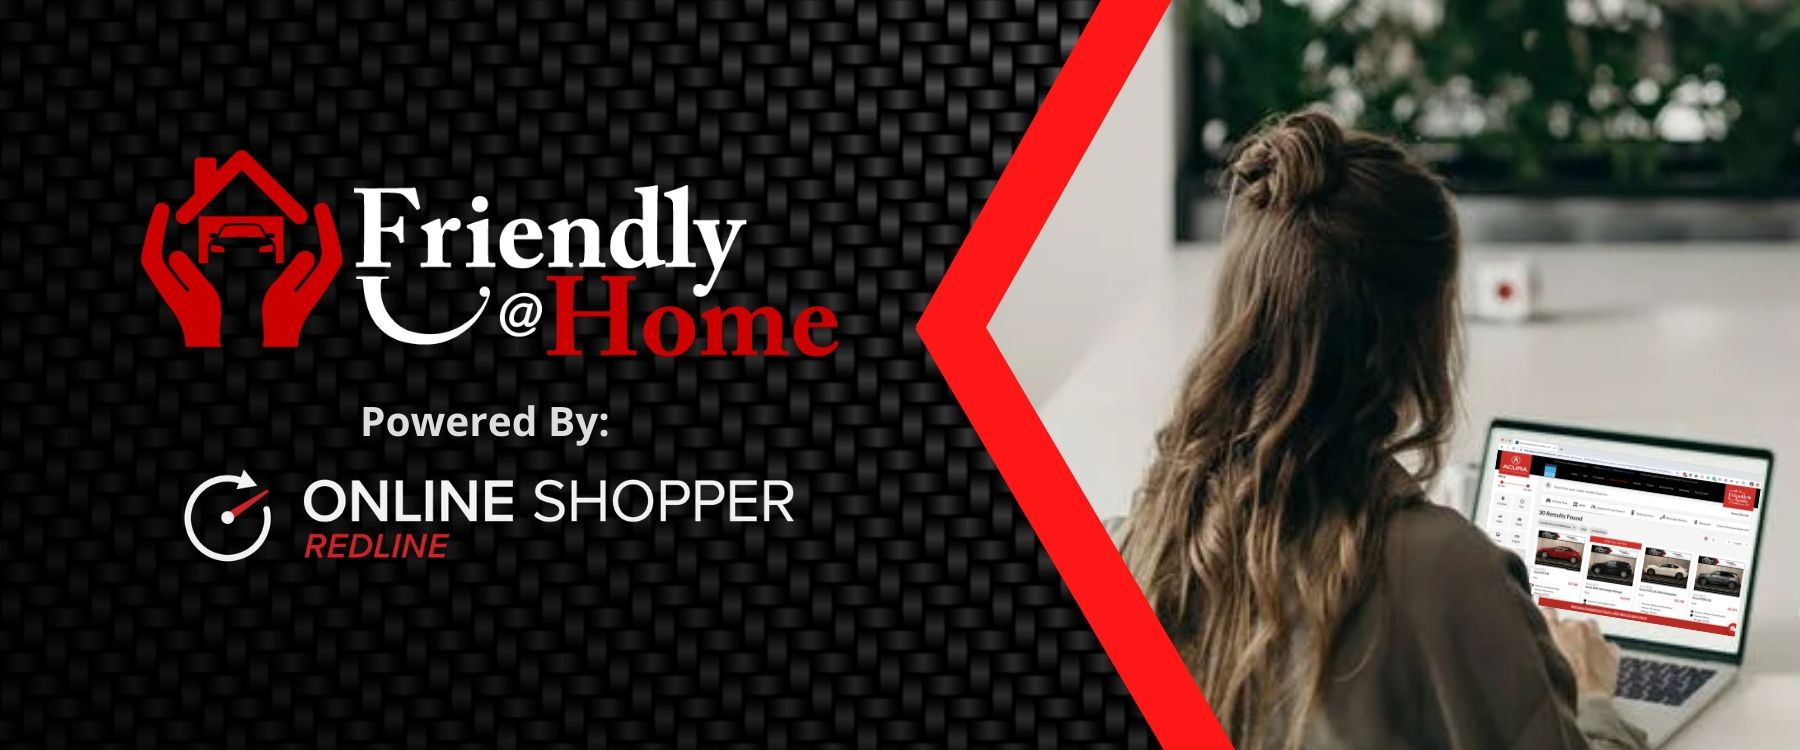 Friendly at Home, Powered by Online Shopper Redline